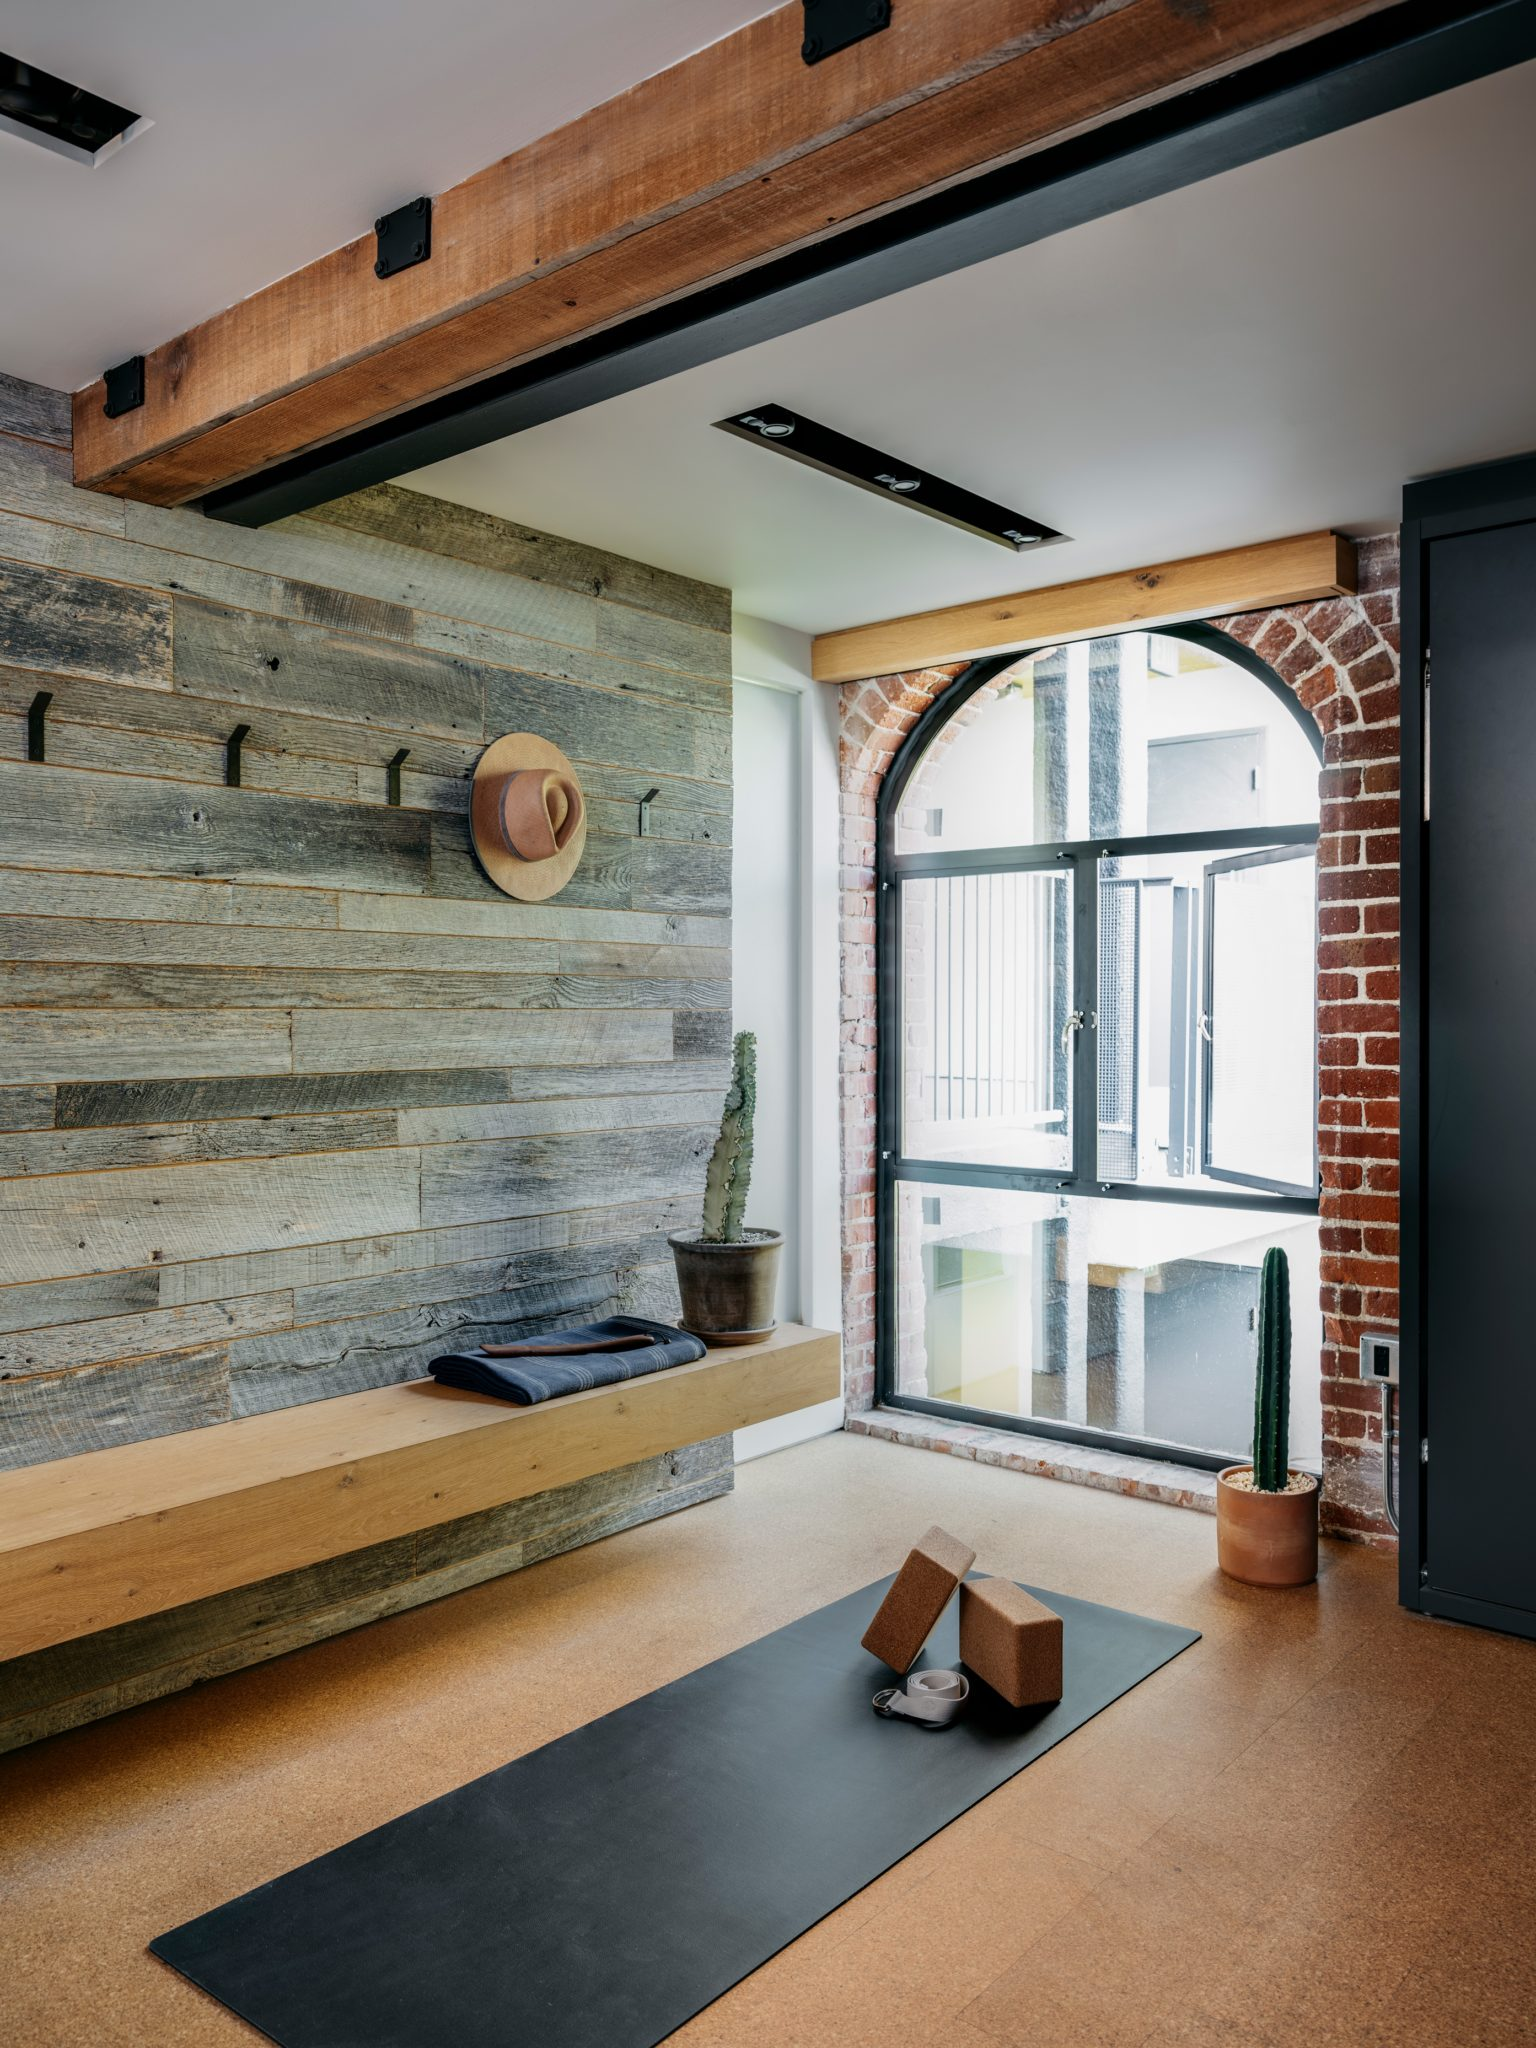 Murdock included a half-inch thick cork floorto provide extra cushioning for the clients' workouts. The white oak bench here was custom-designed by MODTAGE Design.